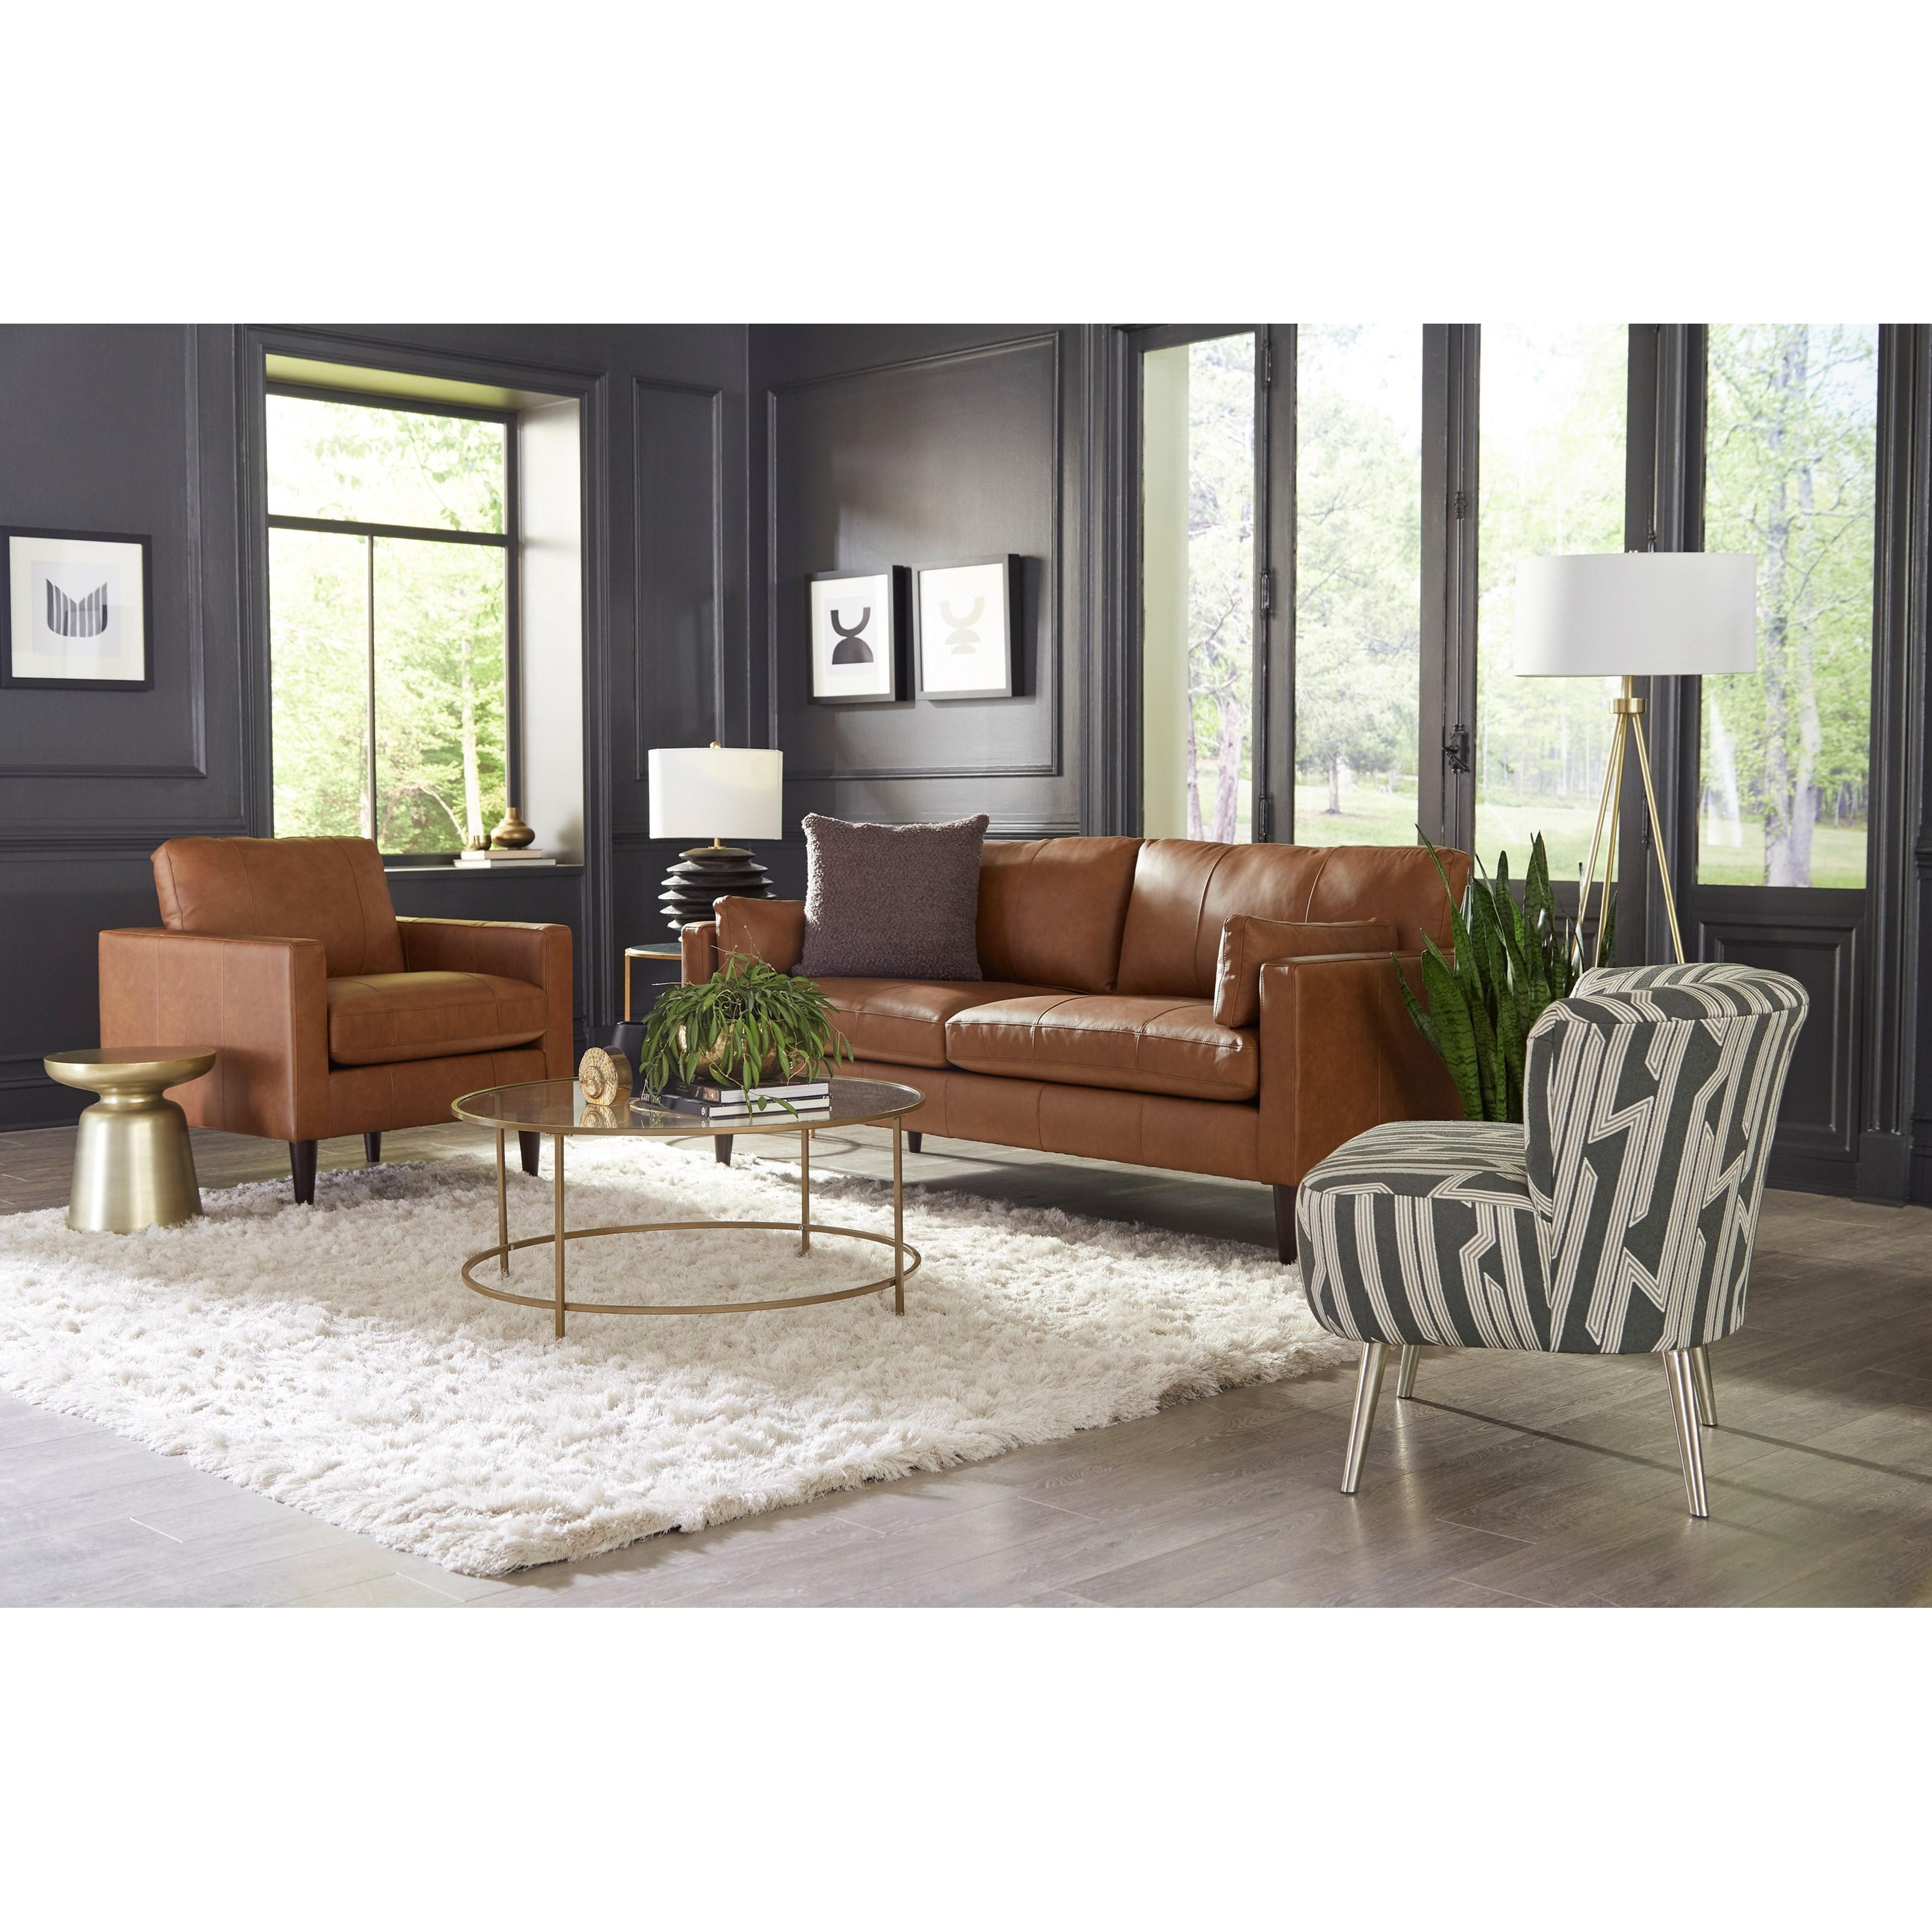 Trafton Living Room Group by Best Home Furnishings at Saugerties Furniture Mart